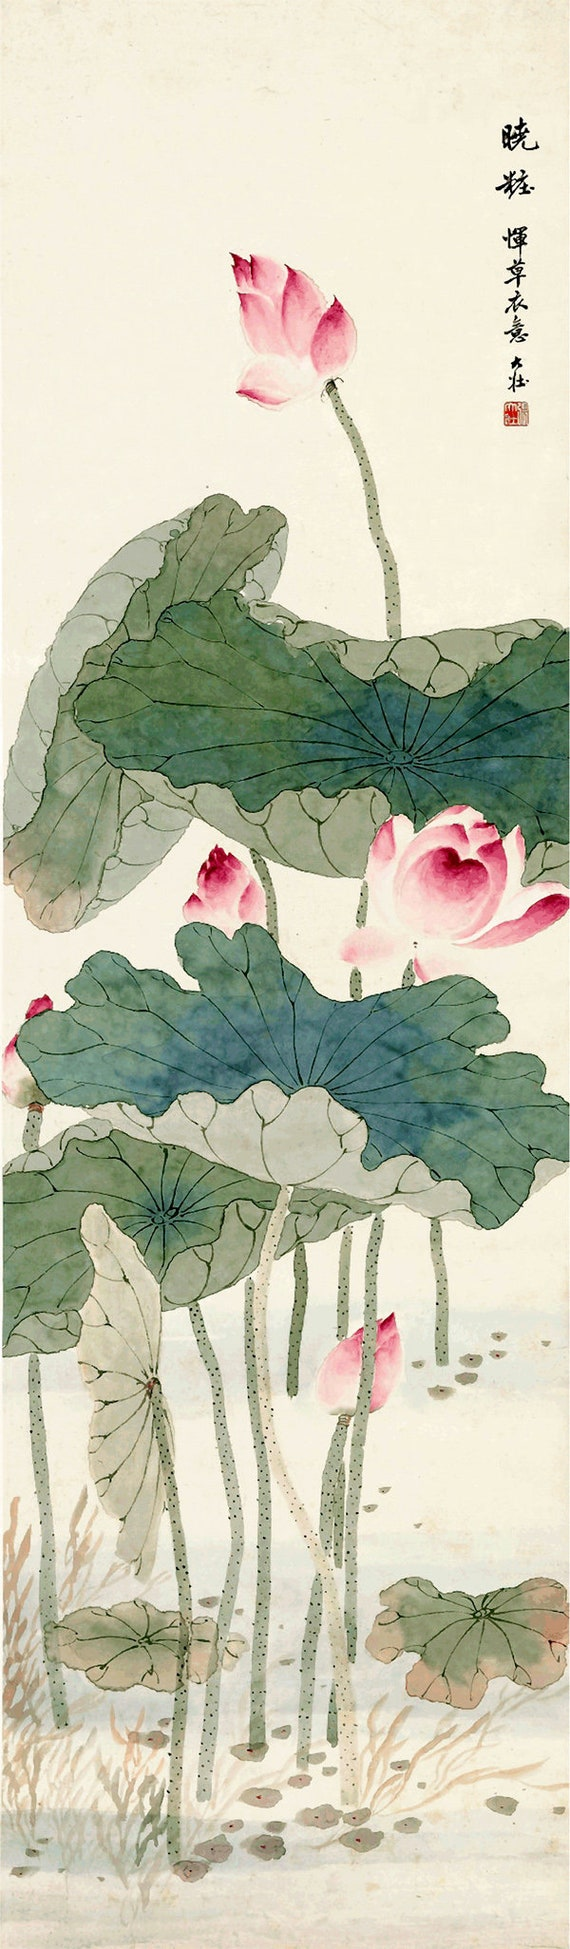 Chinese Art Lotus Watercolour Painting By Zhang Dazhuang Fine Etsy